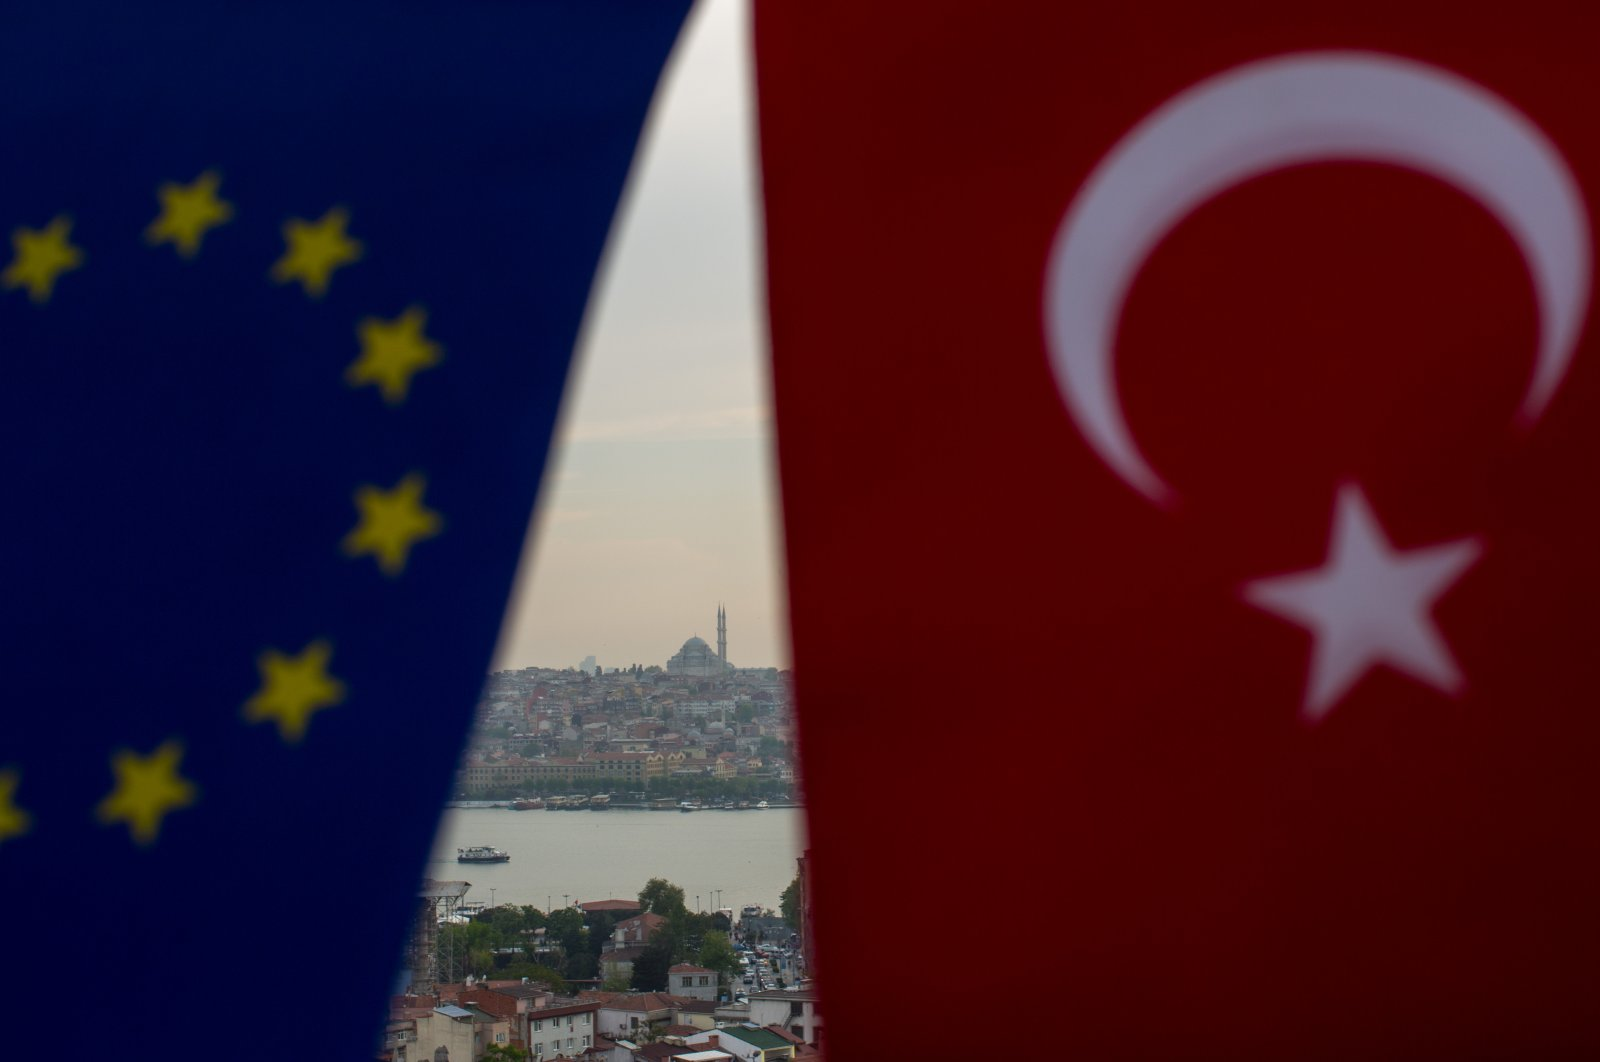 The flags of Turkey and the European Union seen together in Istanbul, Turkey, May 5, 2017. (Photo by Getty Images)